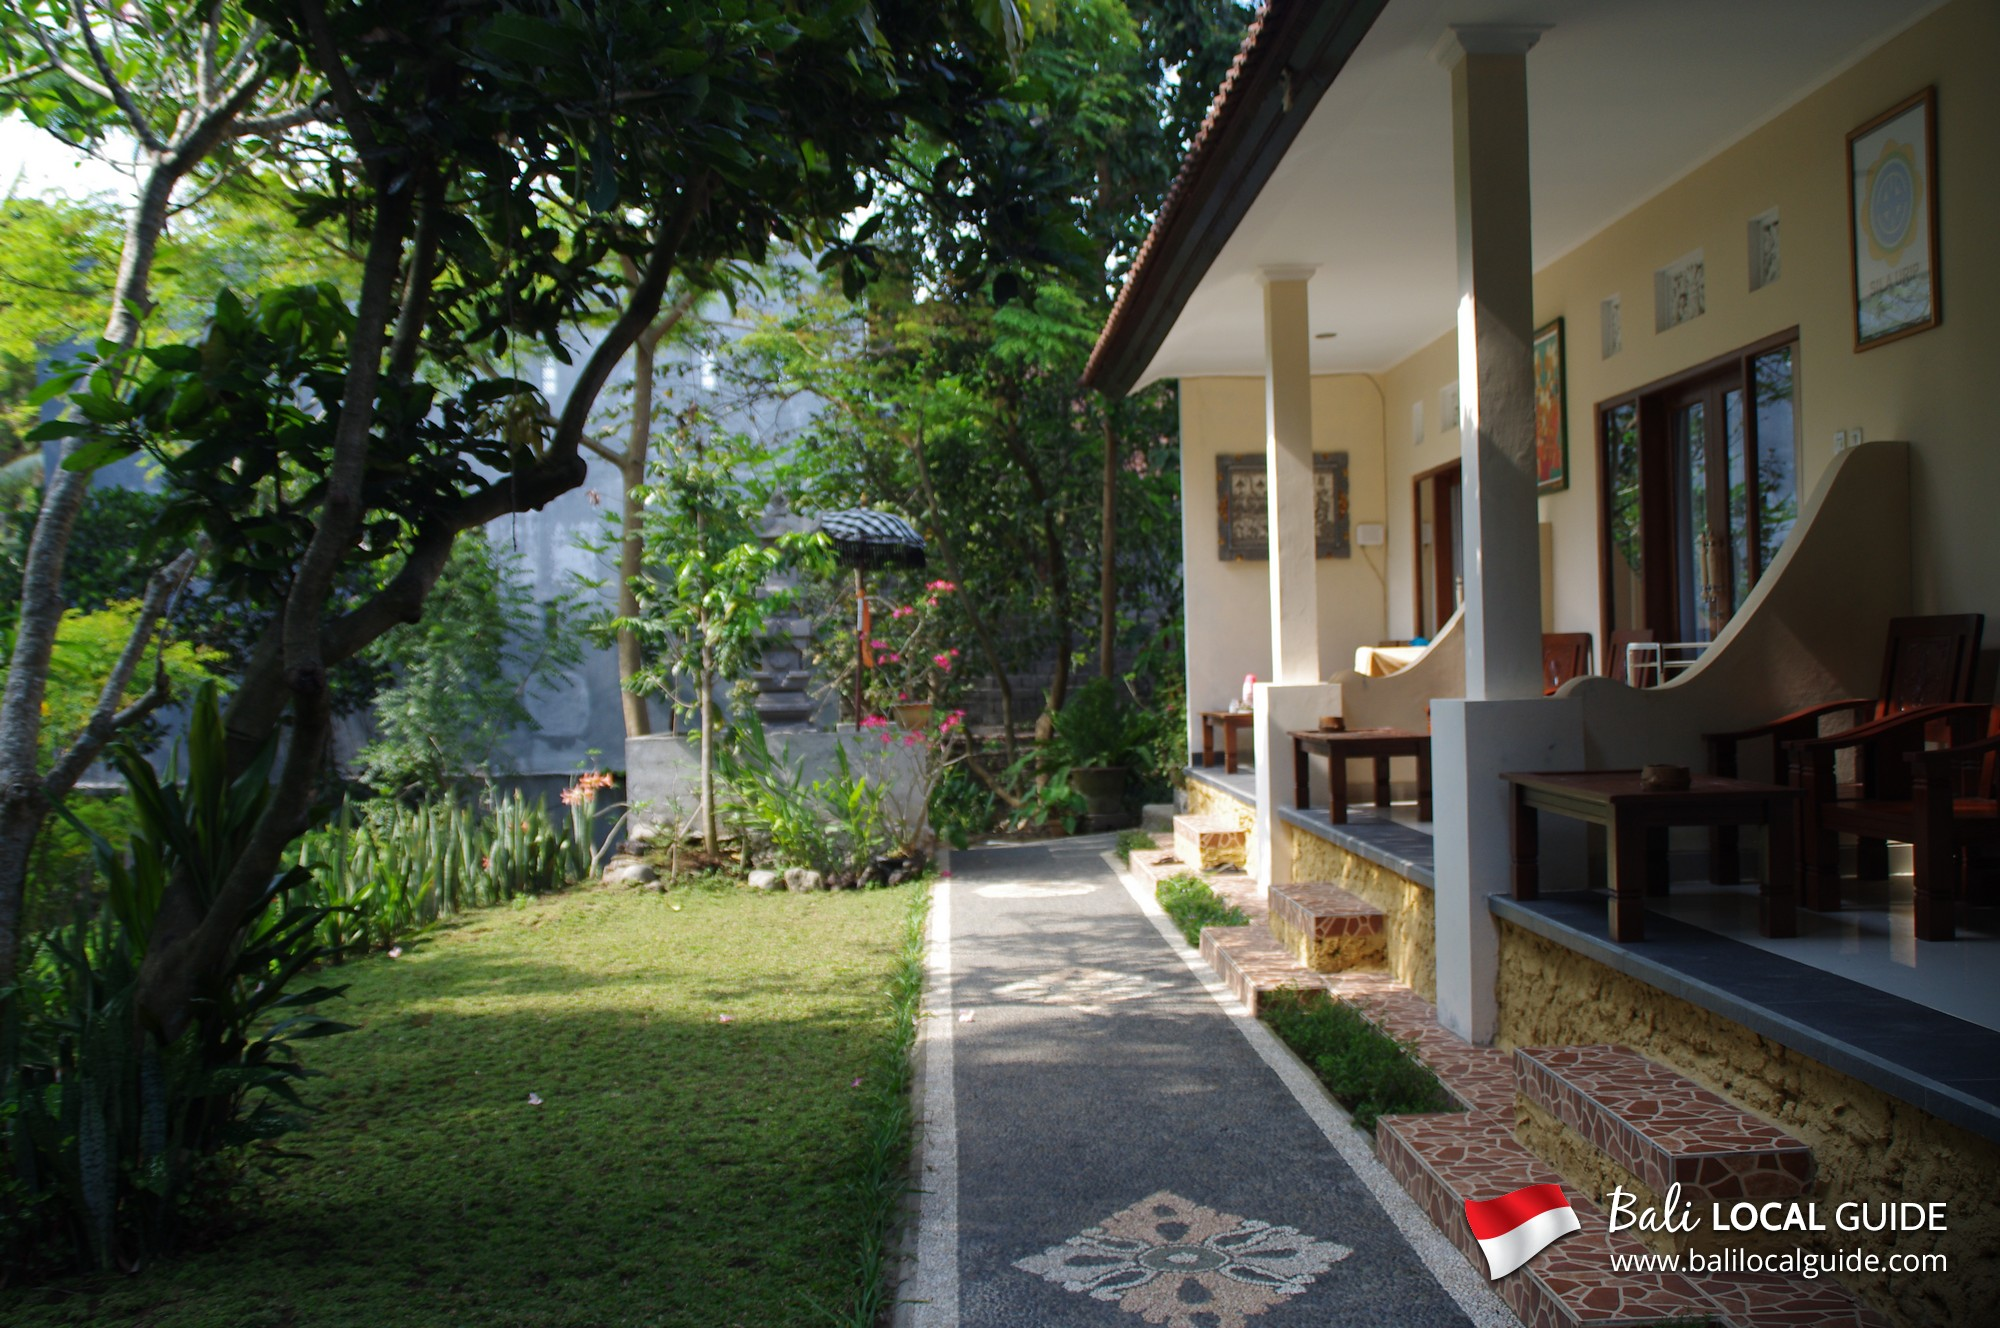 Sila urip guest house avis et photos bali local guide for Au jardin guest house welkom